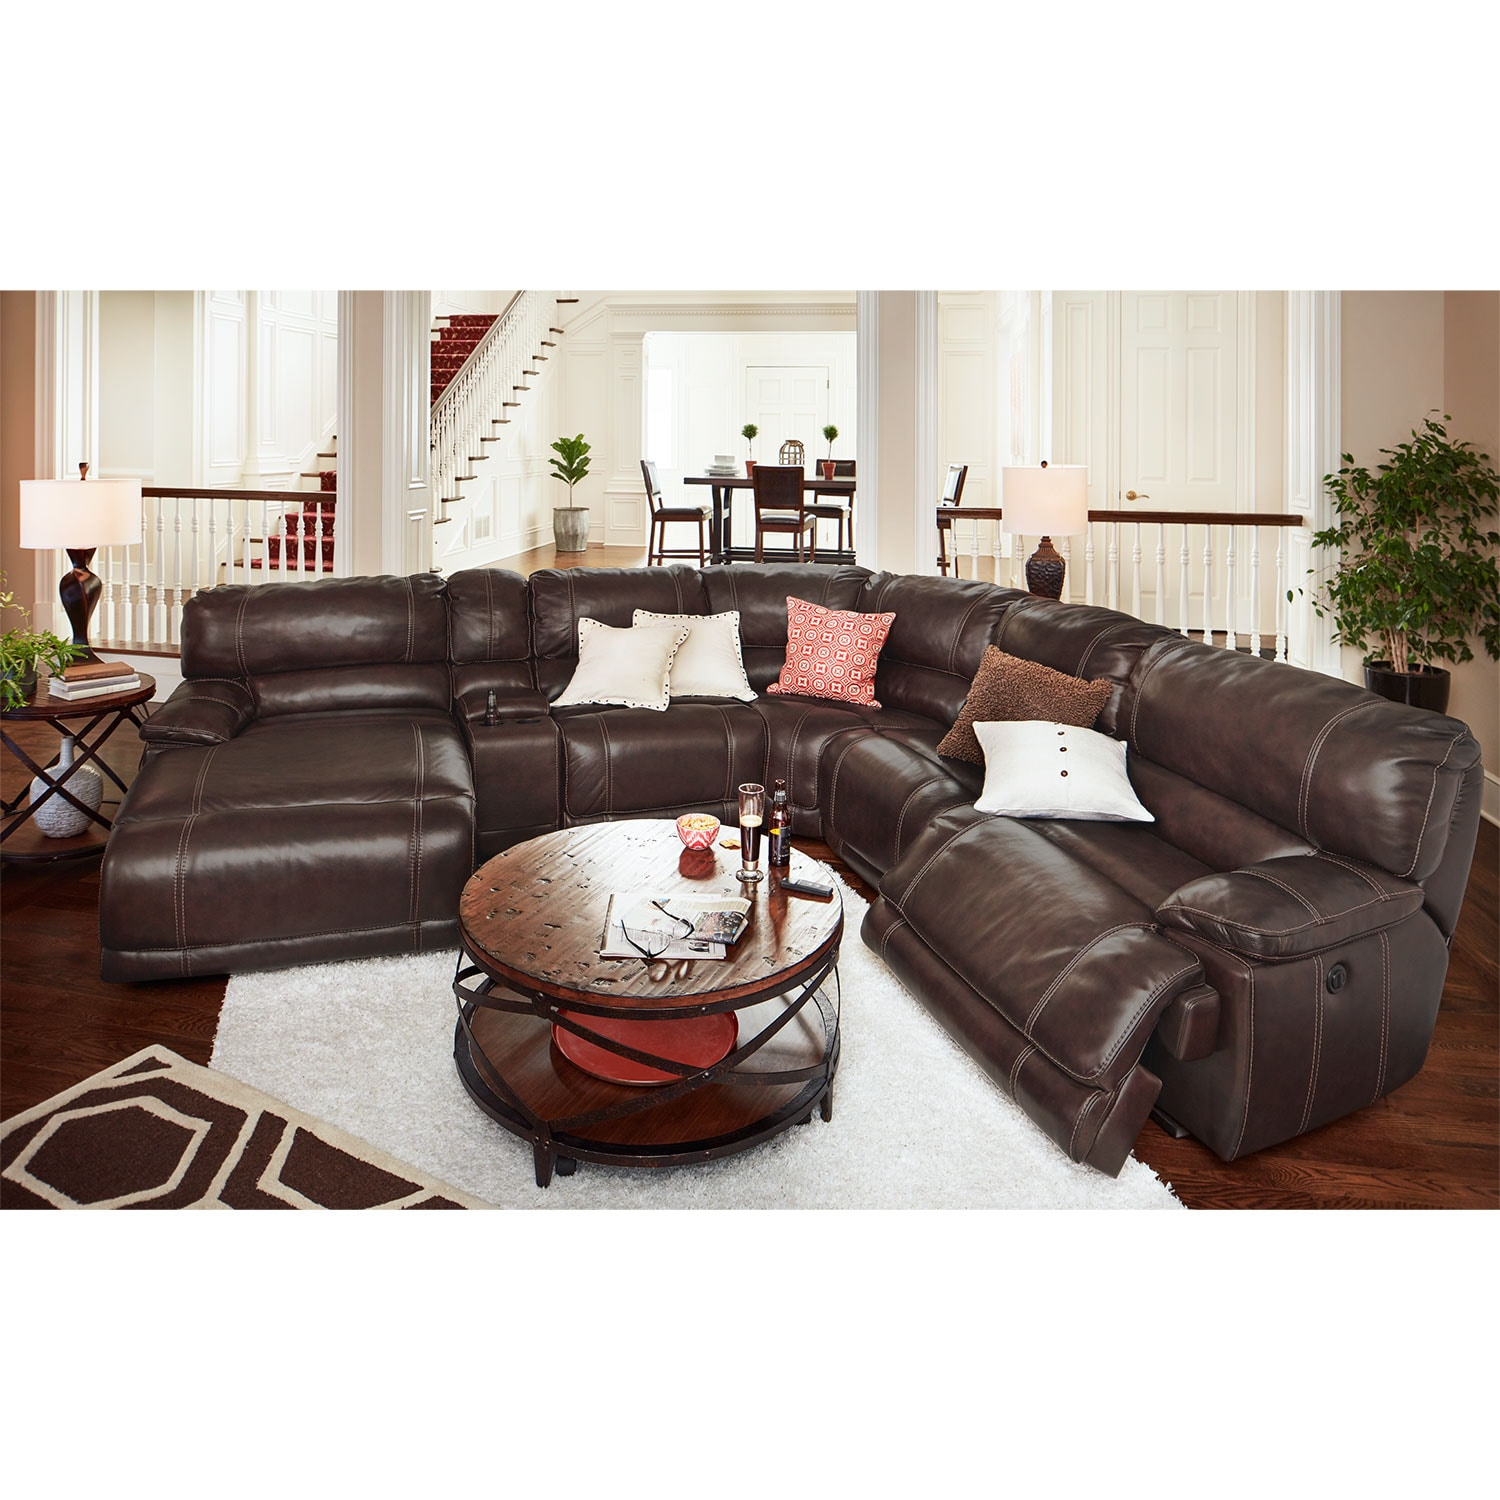 st malo 6piece power reclining sectional with leftfacing chaise brown by one80